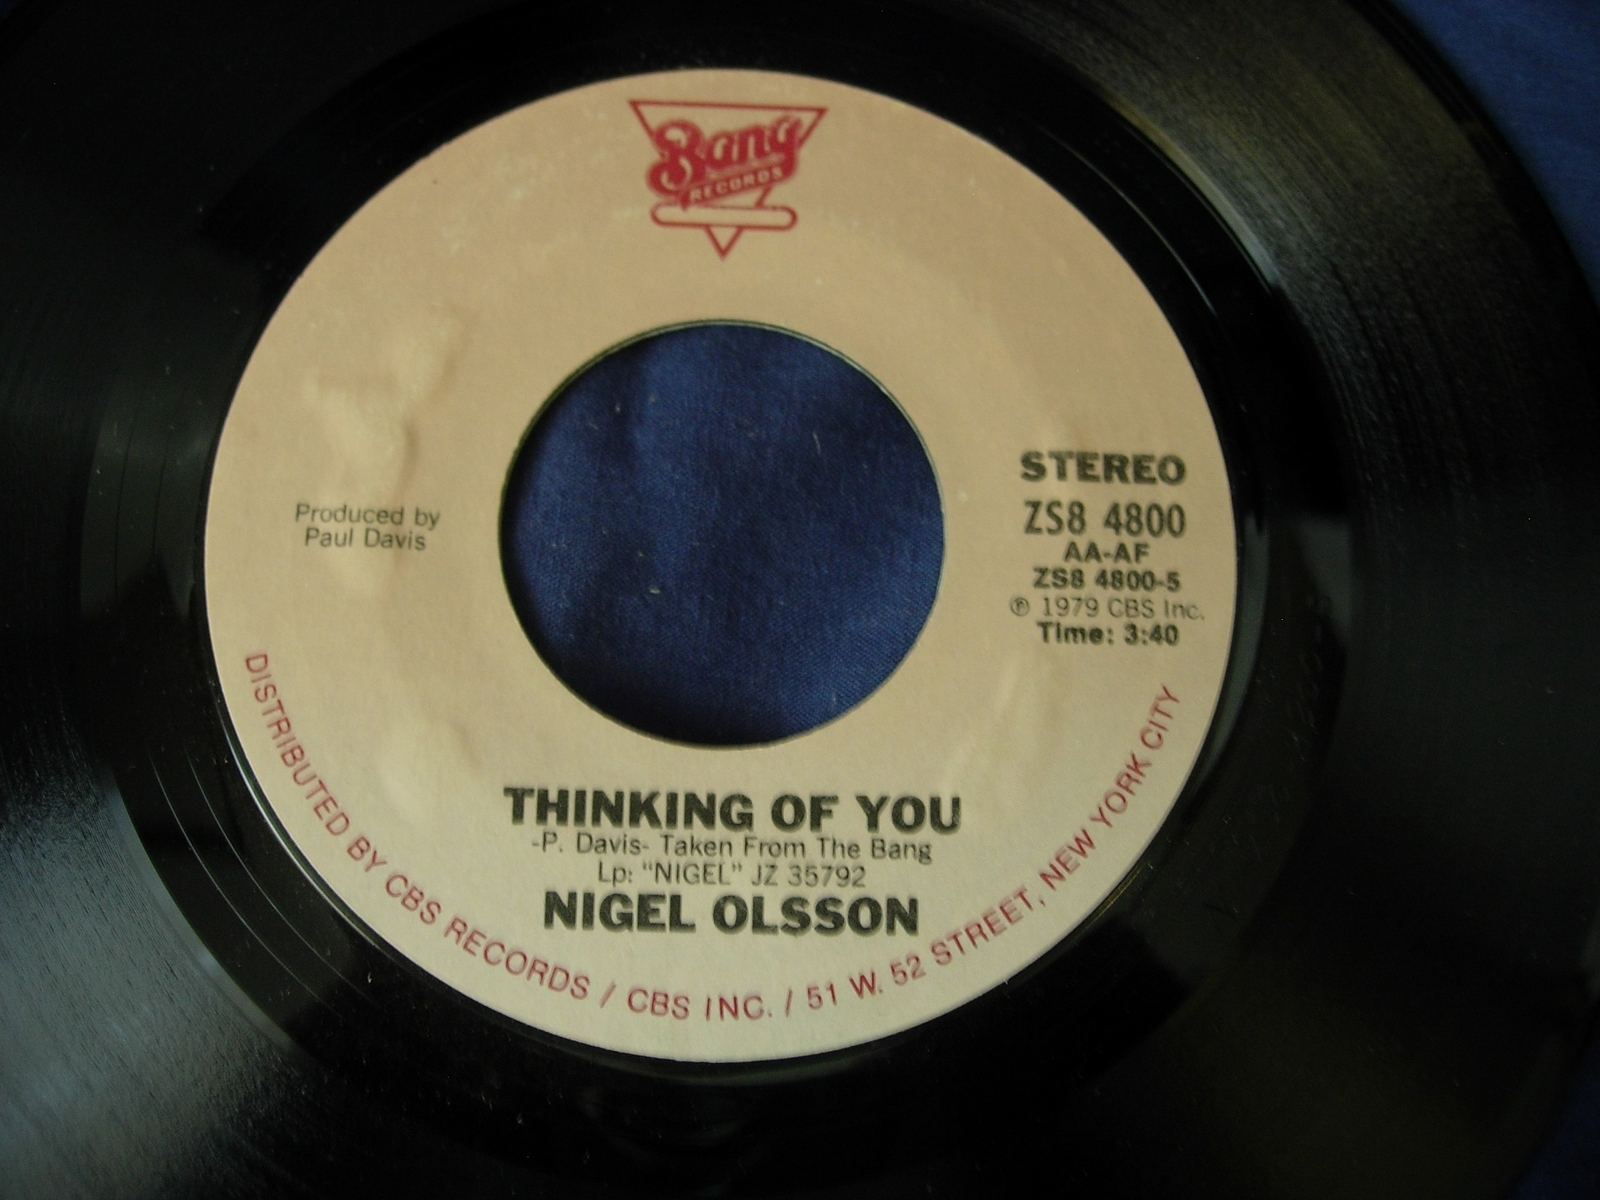 Nigel Olsson - Little Bit of Soap / Thinking of You - Bang Records ZS8 4800